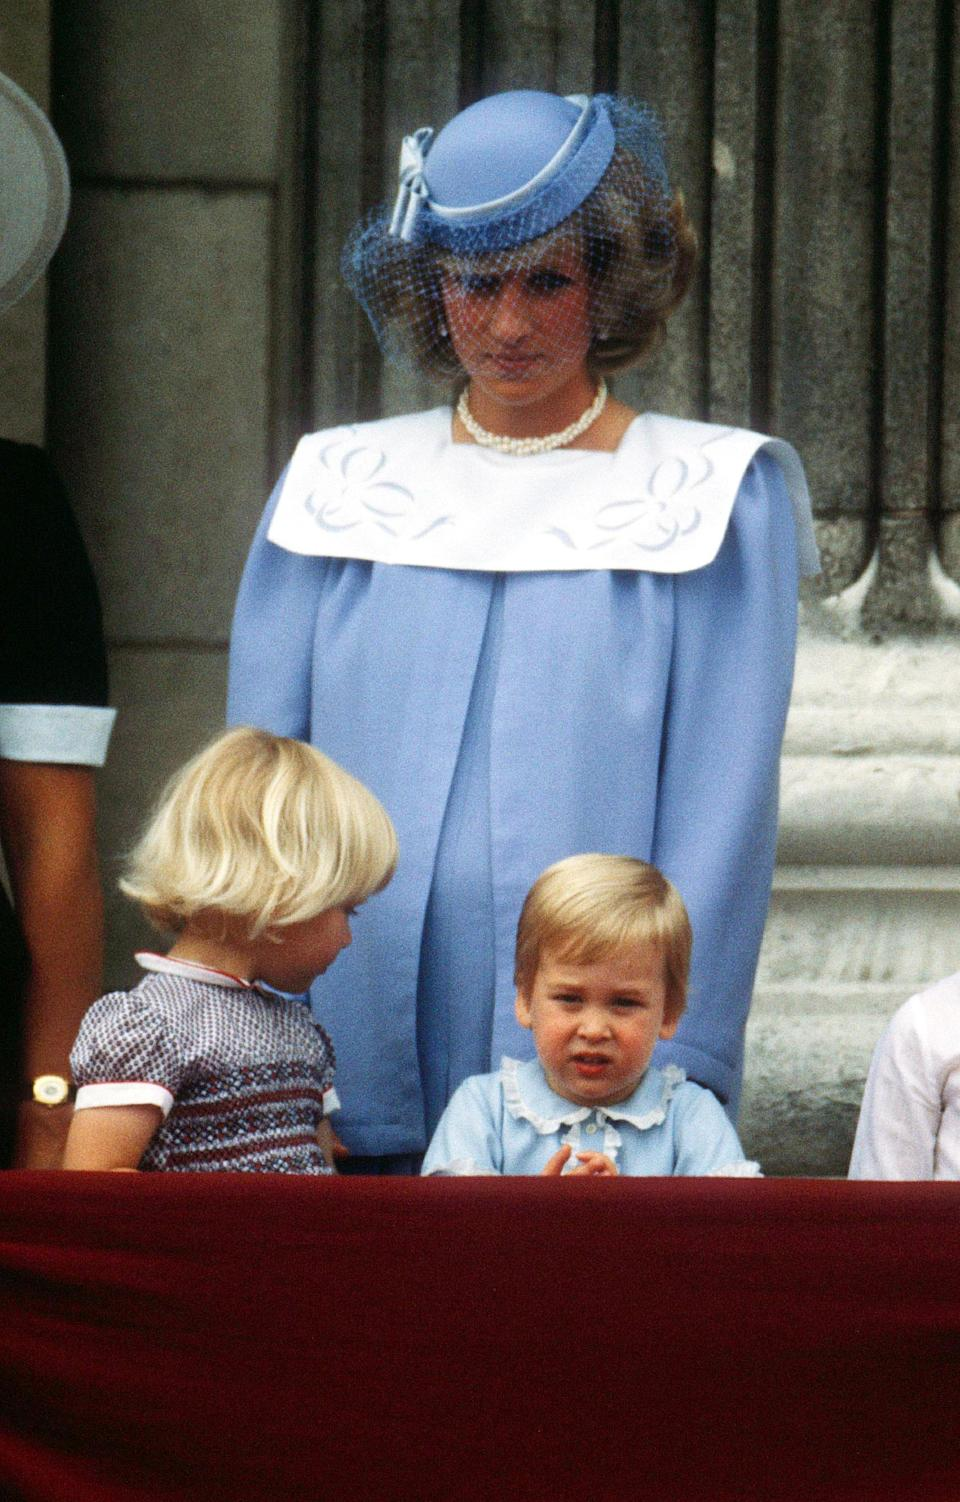 Back in 1984, Princess Diana donned a powder blue smock dress accessorised with a veiled hat for the annual Trooping the Colour. (Rex pictures)